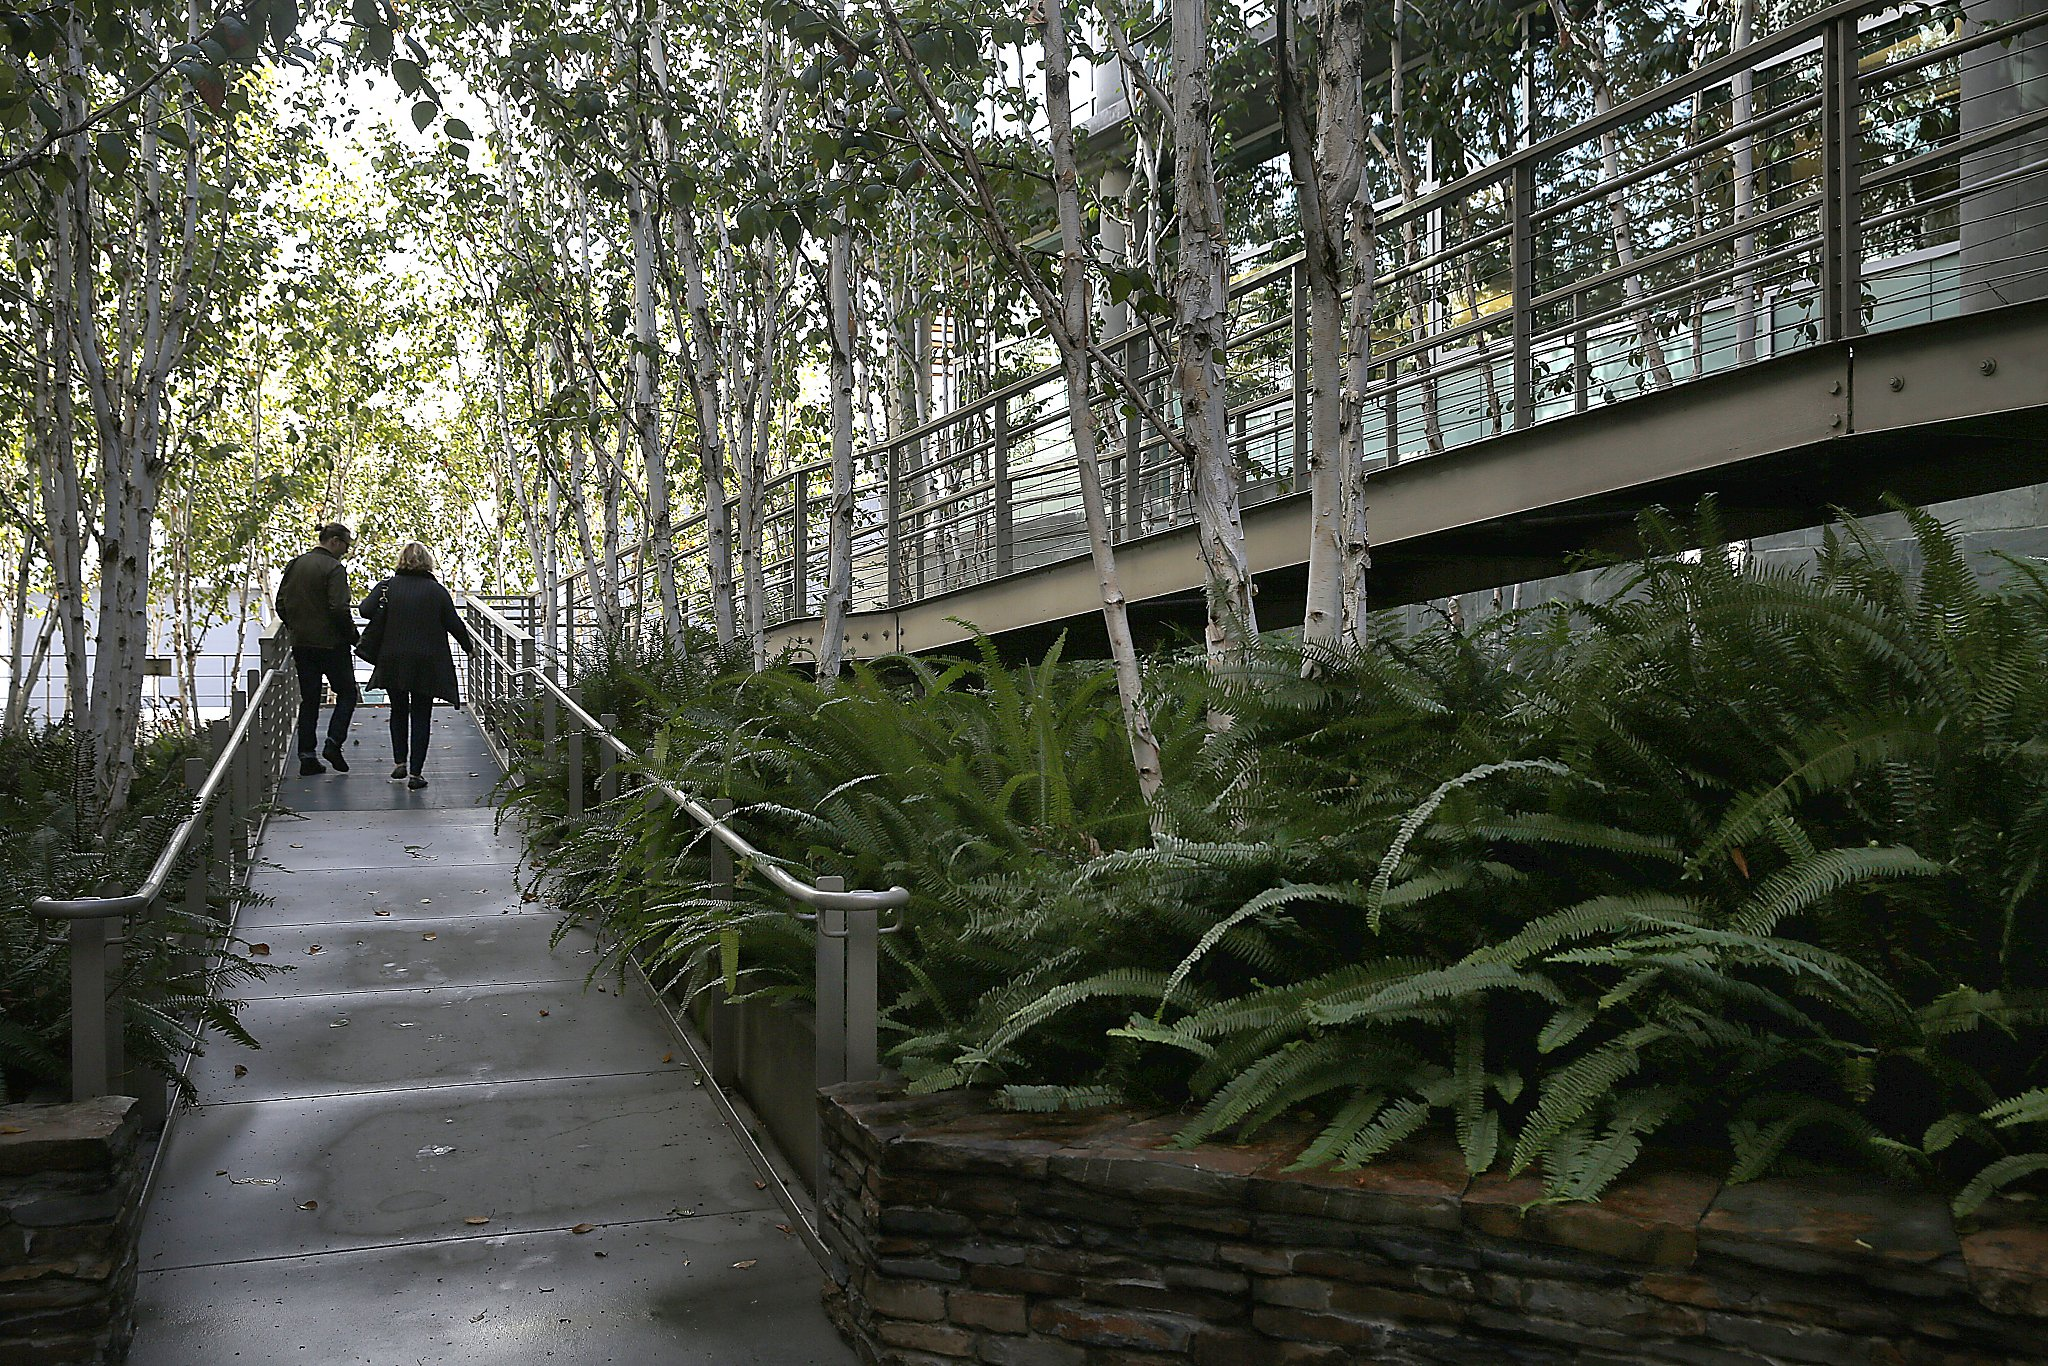 Landscape architects see creations evolve over time san for San francisco landscape architecture